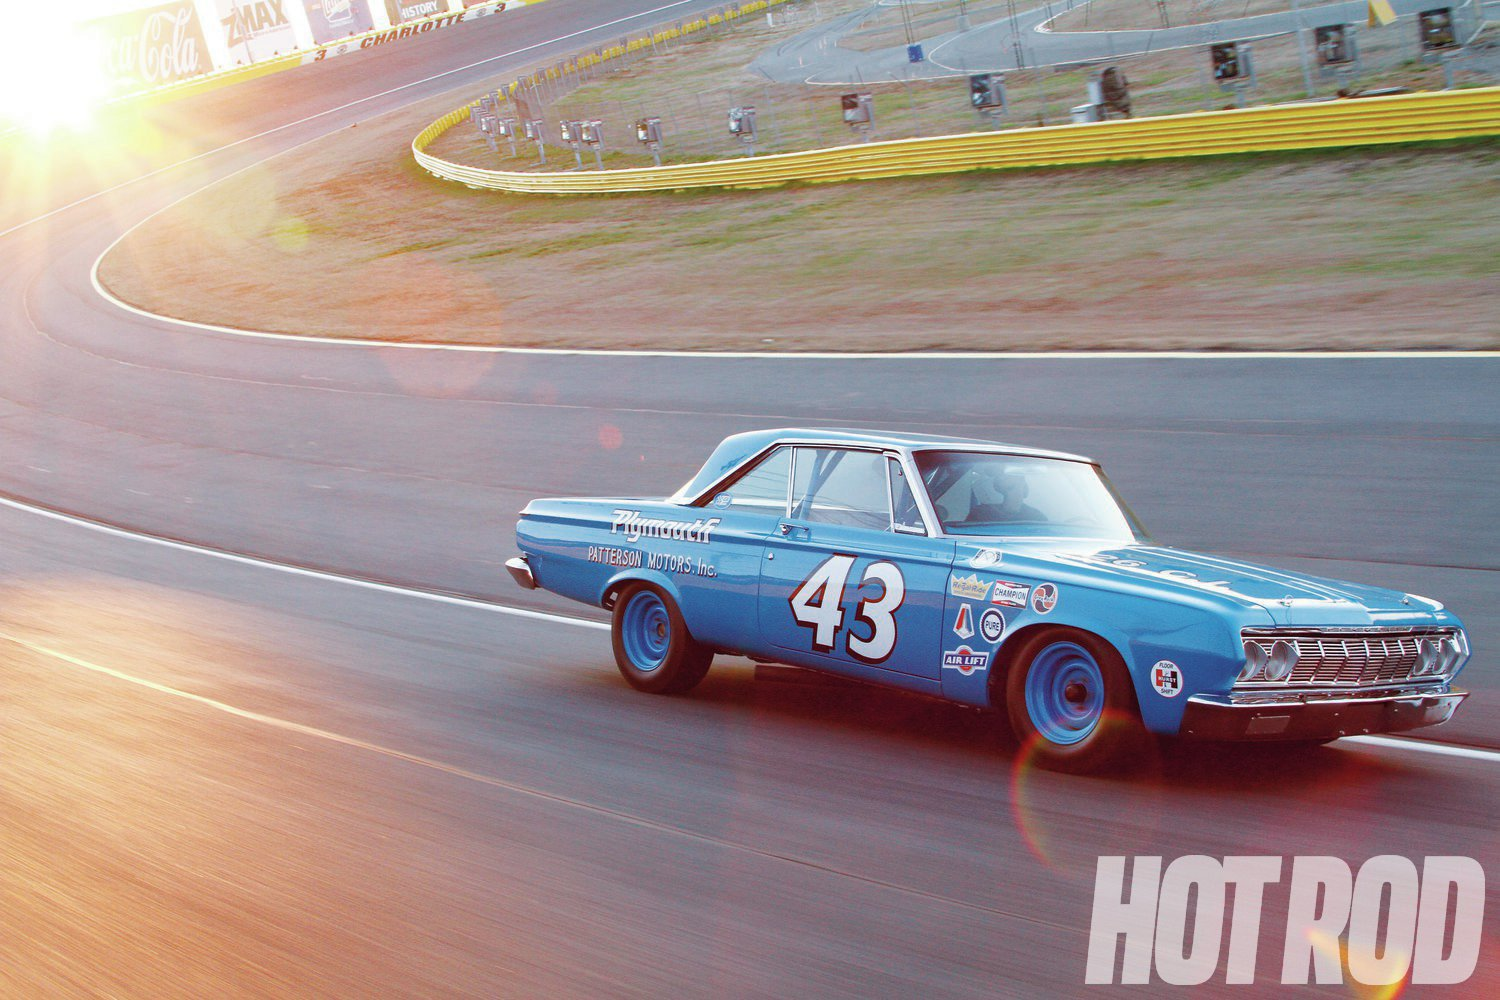 We took this '64 Plymouth clone of the original No. 43 car to Charlotte Motor Speedway in Concord, North Carolina.